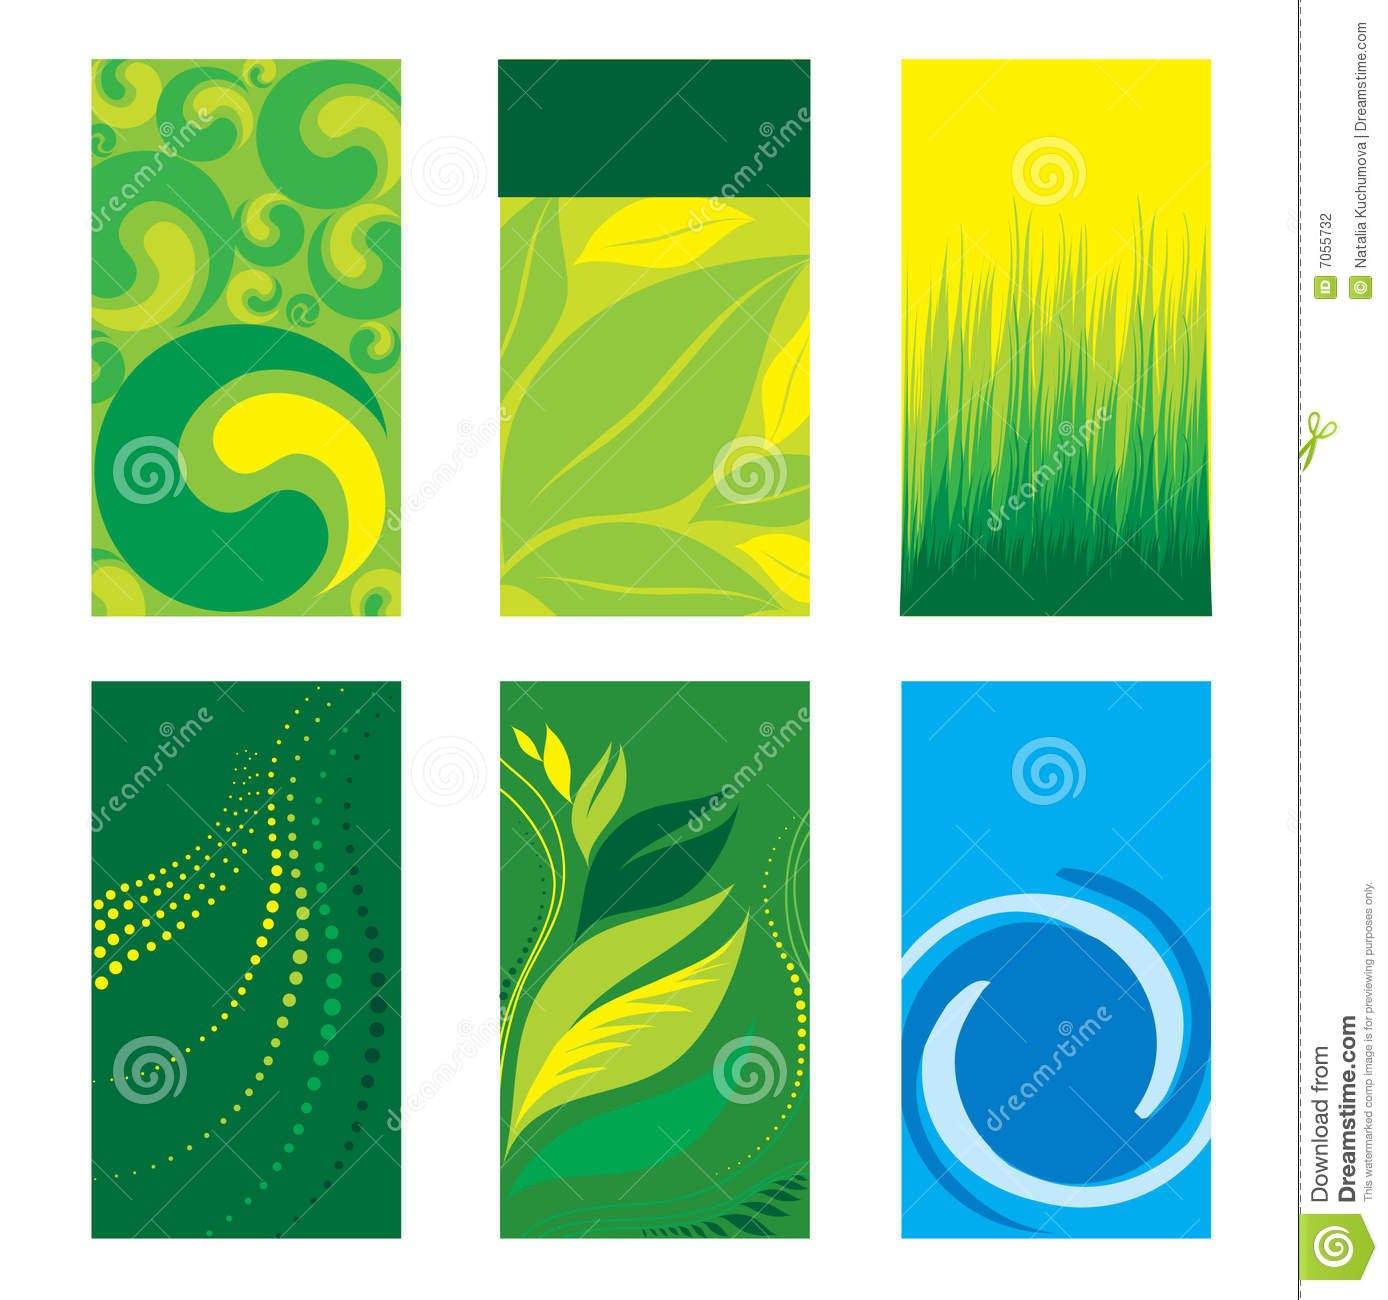 Stock Photography Green Business Cards Image